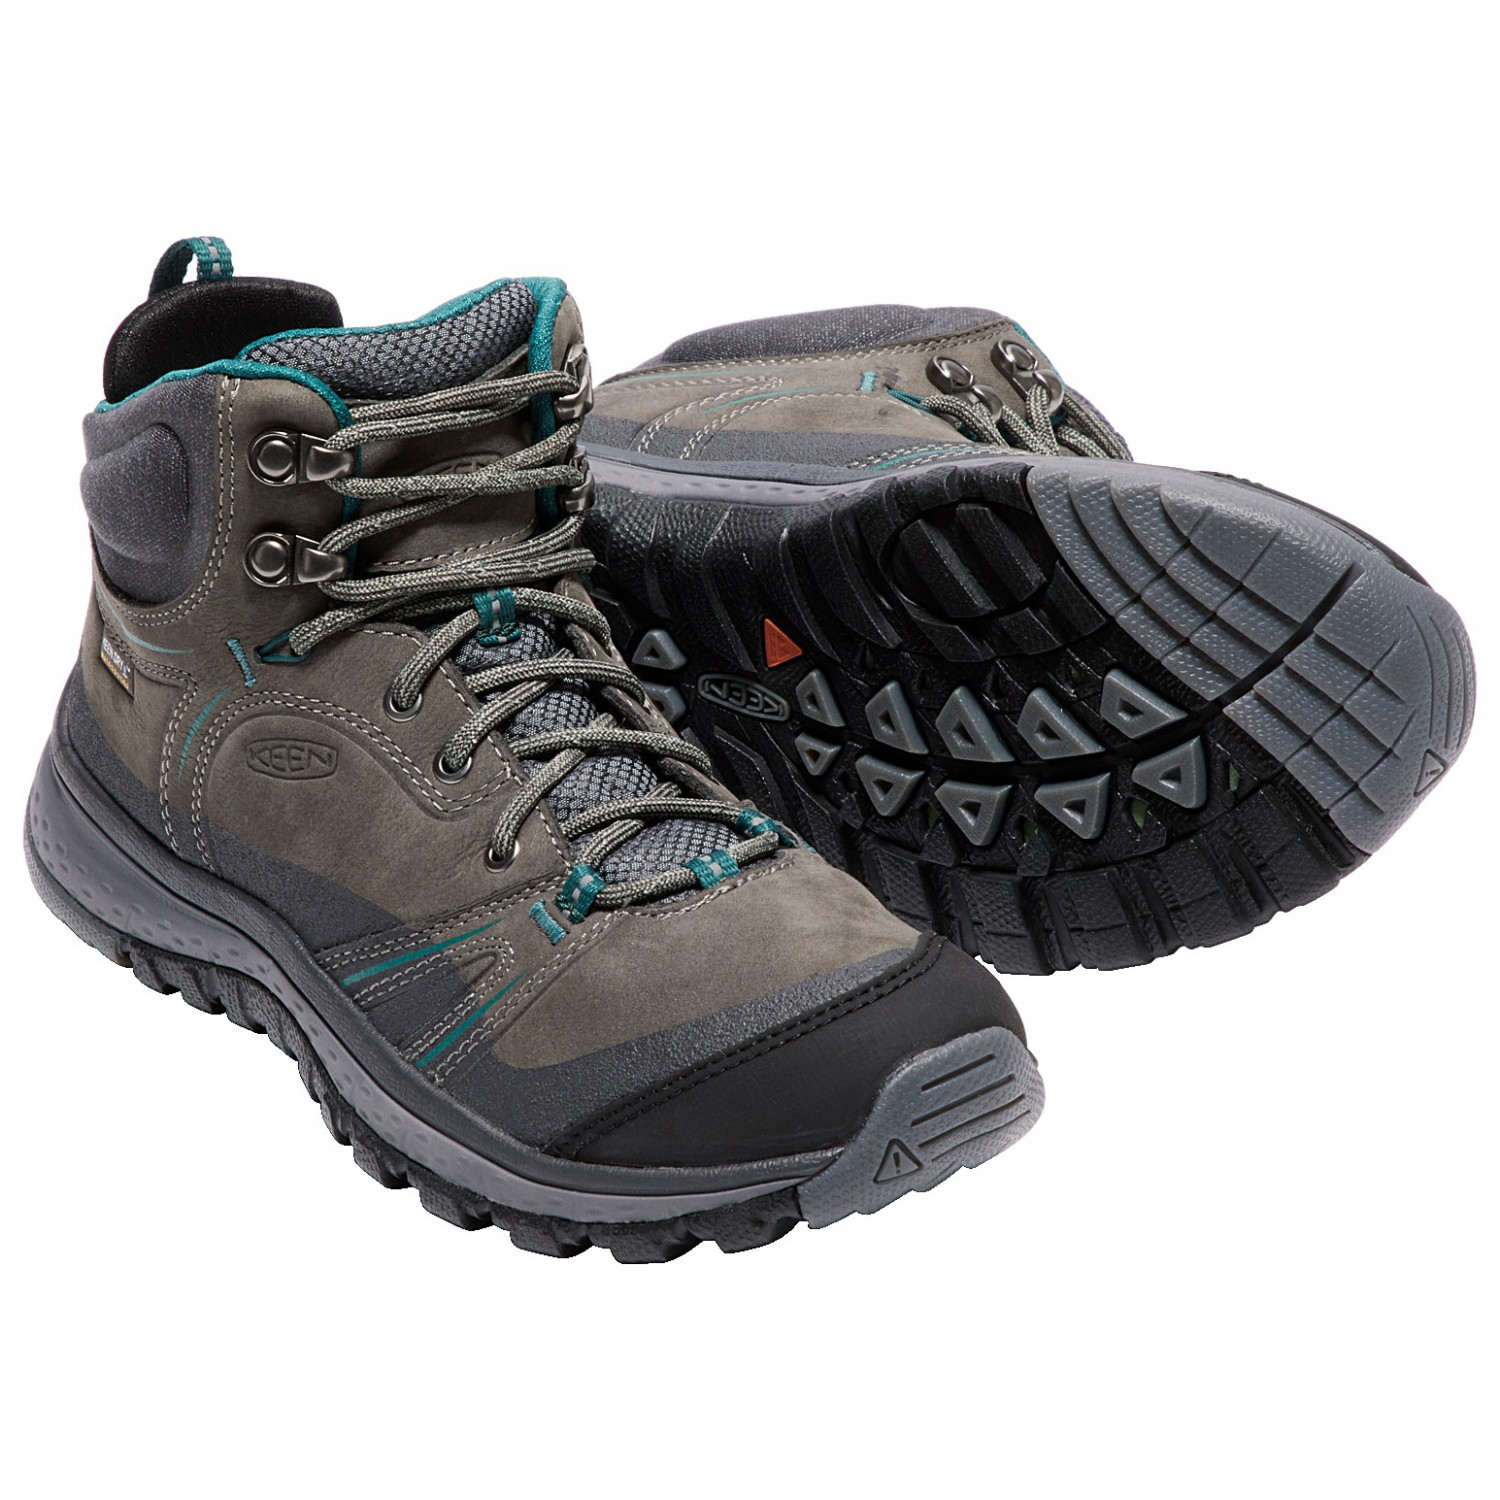 ad6337f58f4 Keen Terradora Leather Mid WP - Walking Boots Women's | Free UK ...